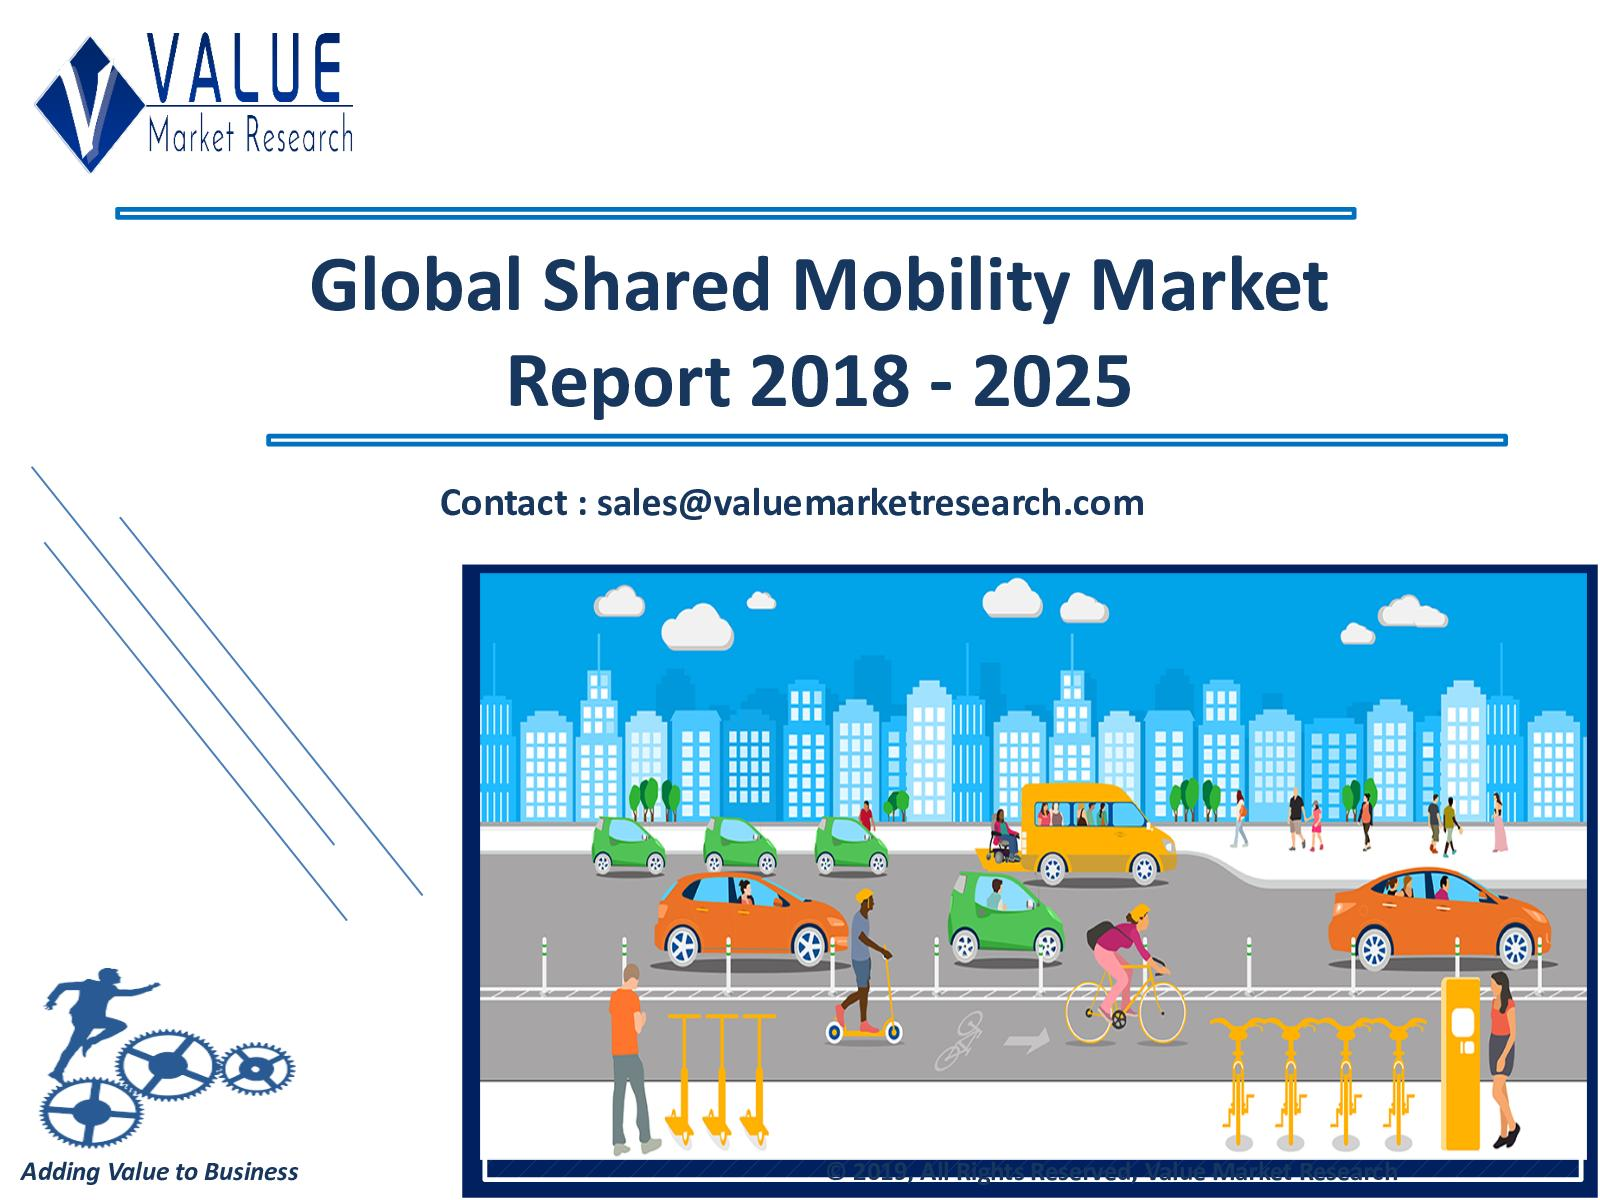 Calaméo - Shared Mobility Market Size, Industry Analysis